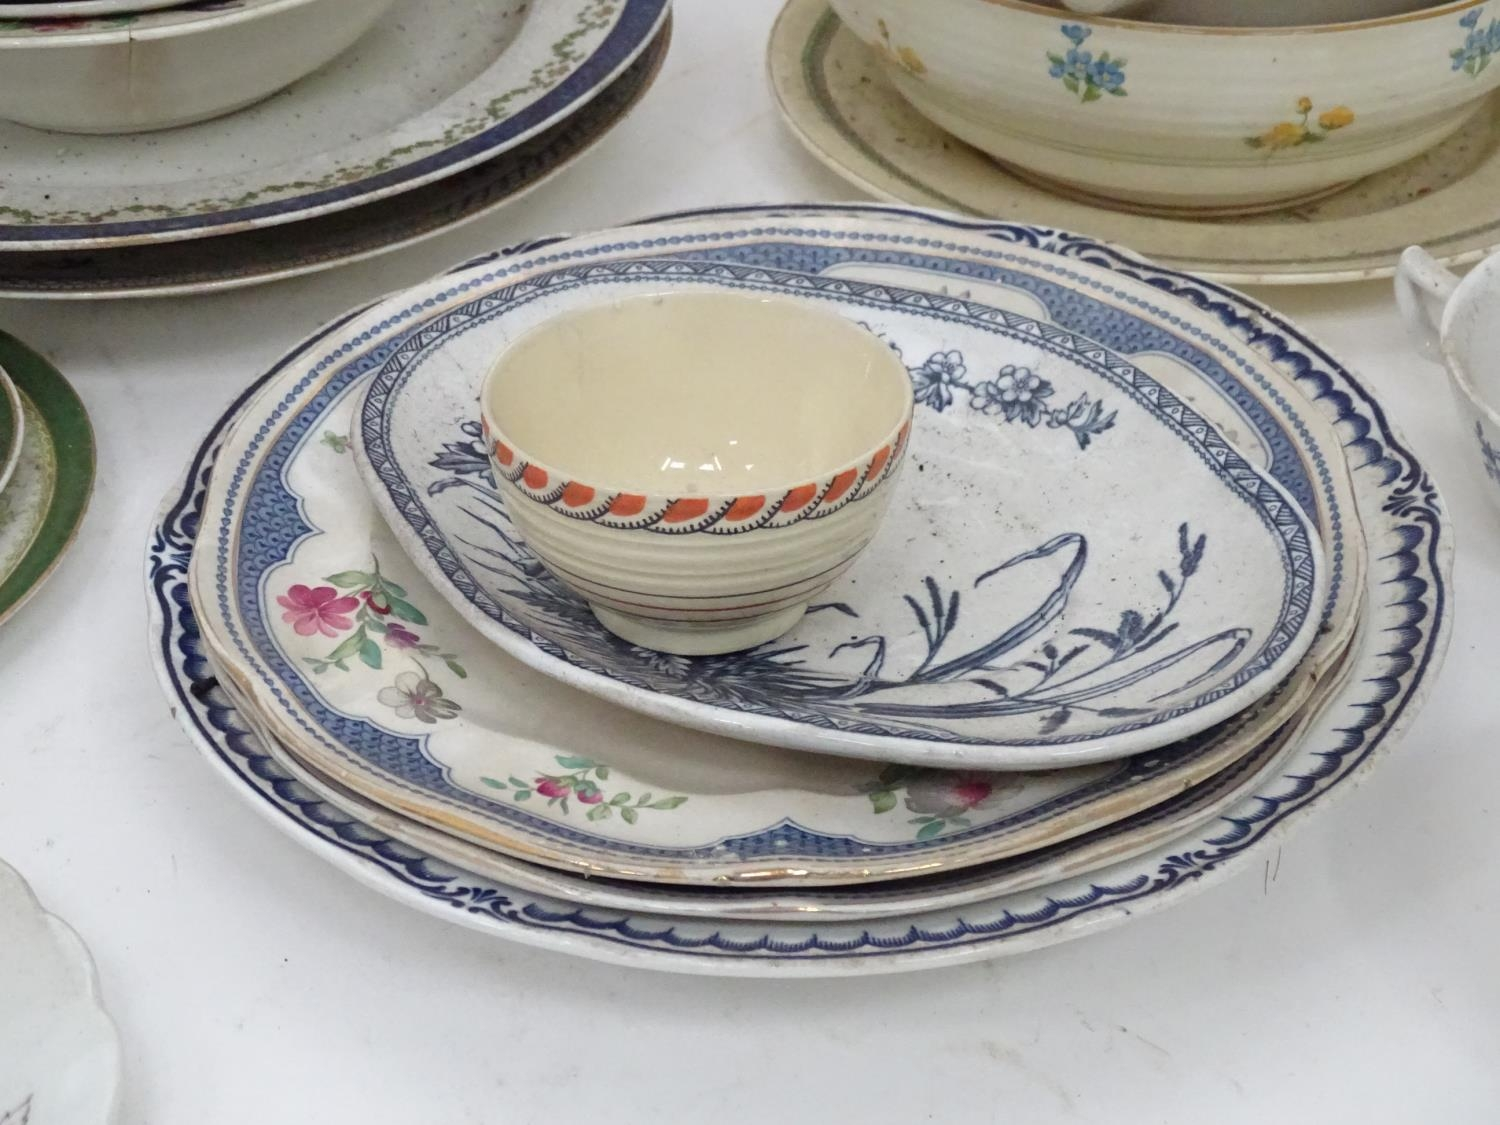 A quantity of assorted Booths china patterns to include Old Staffordshire, Flowerpiece, - Image 9 of 14